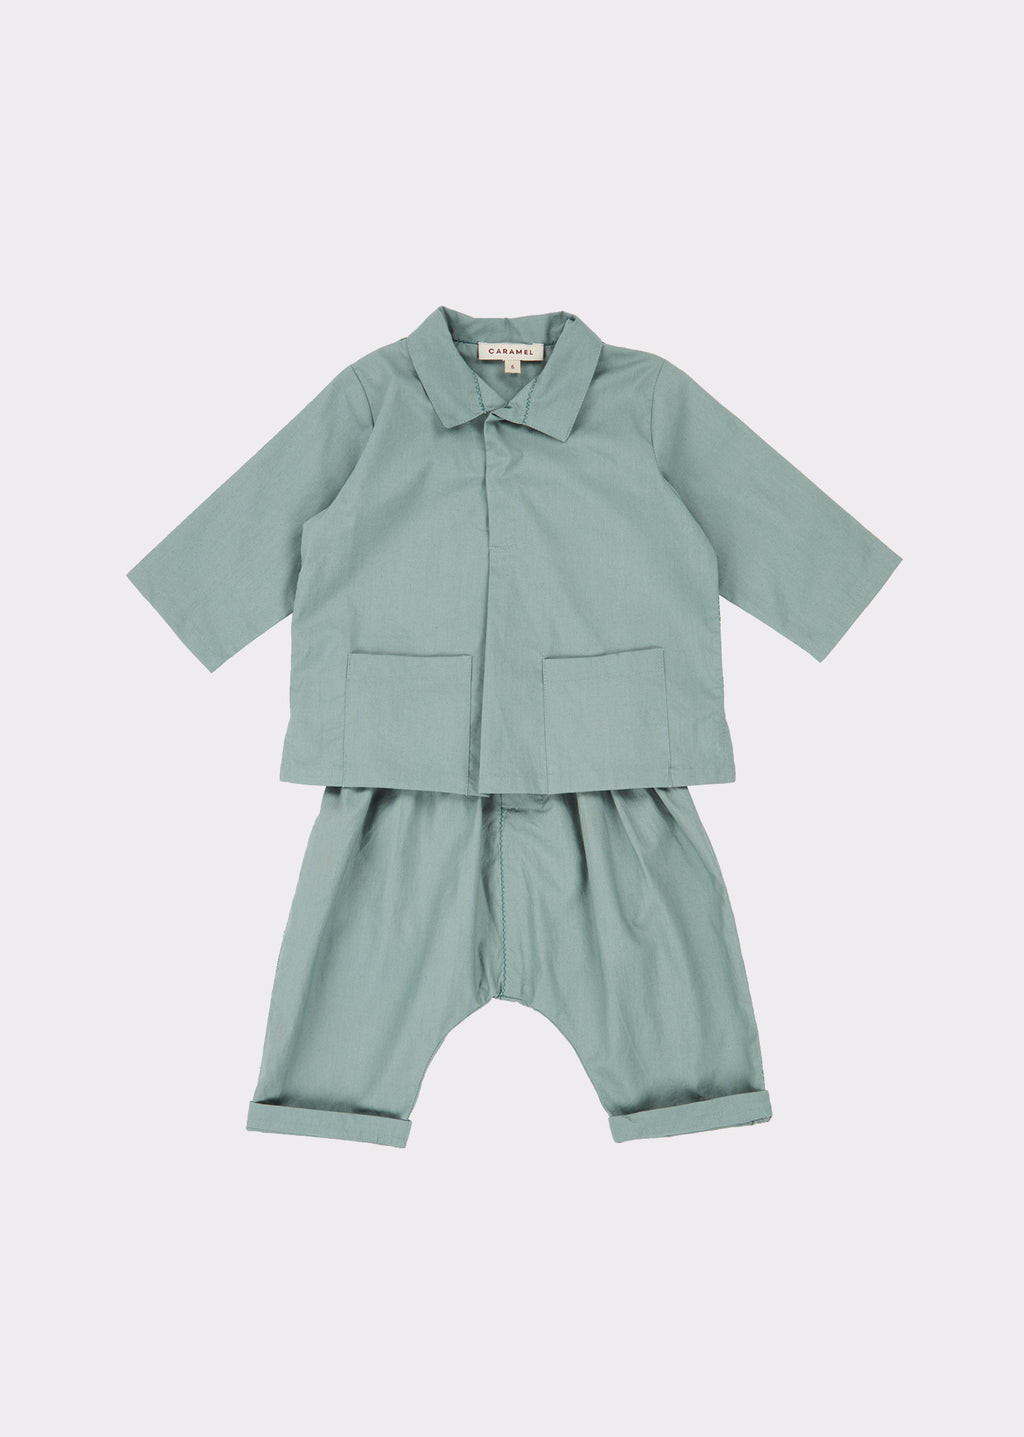 Hyde Park Baby Set - Stone Grey